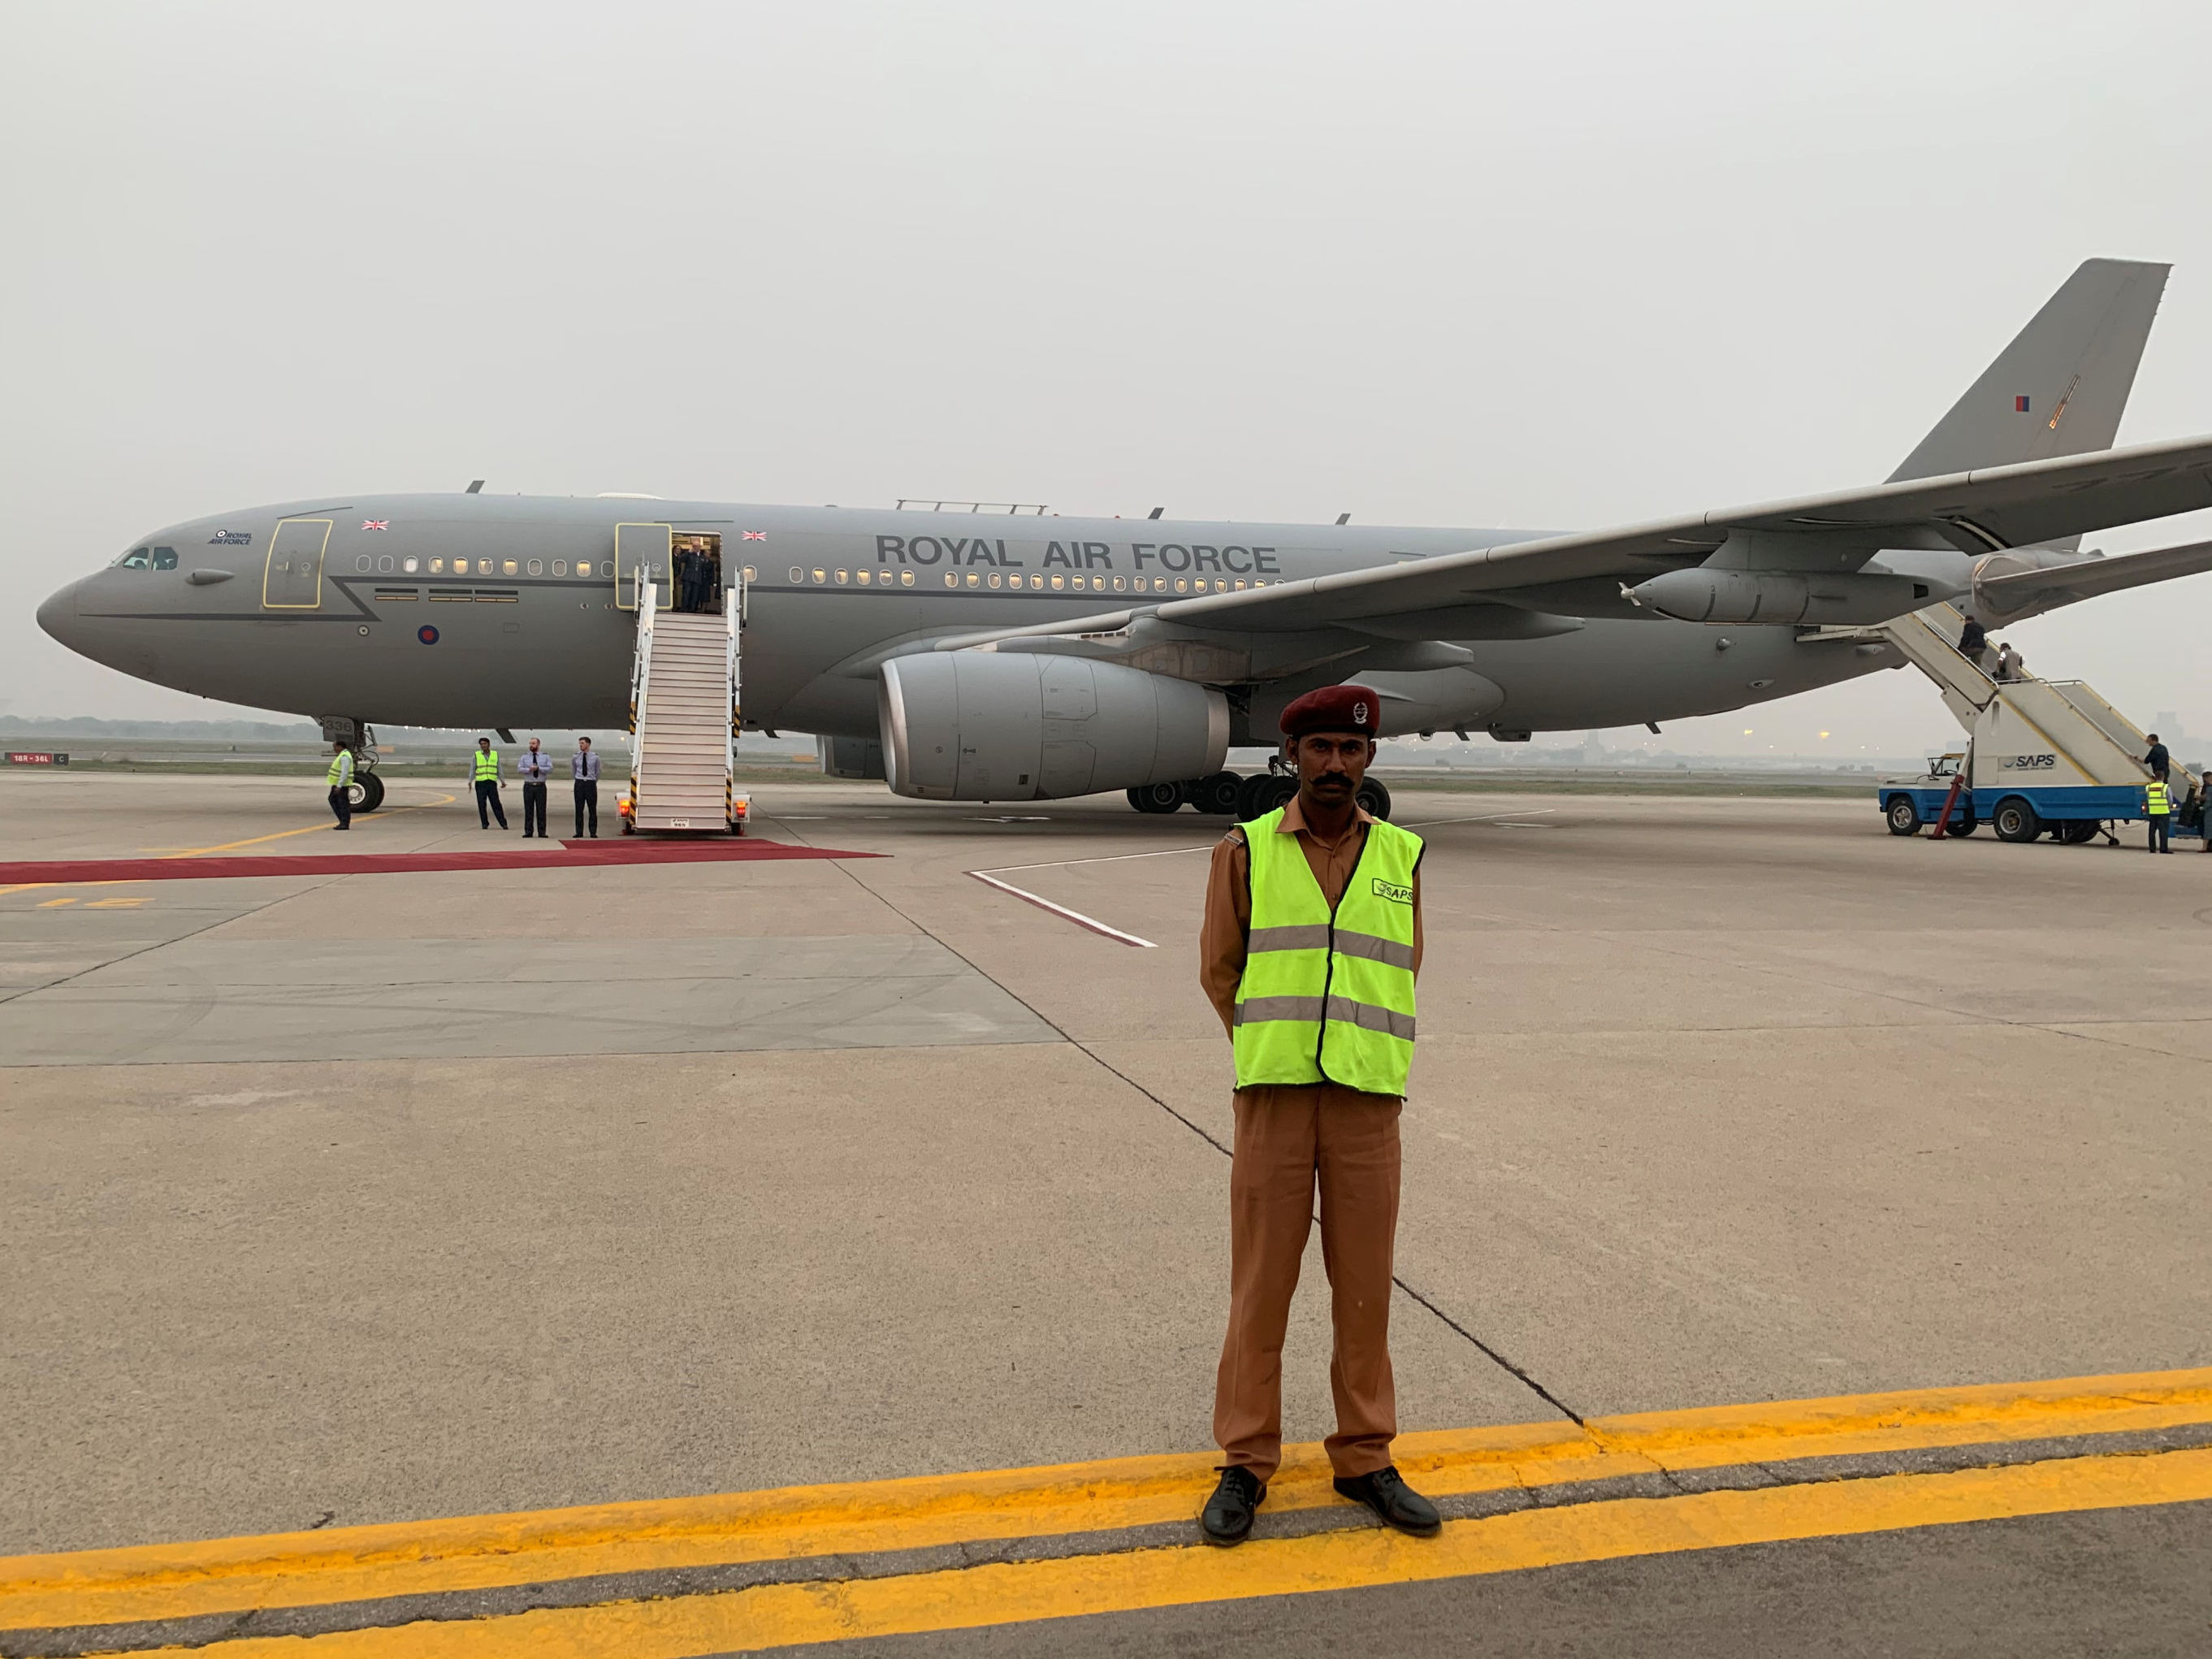 Pakistani security is seen on the tarmac in front of the Royal Air Force plane in Lahore, Pakistan, October 17, 2019. The Royal Air Force plane carrying the royal couple was forced to abort a landing in Islamabad twice on Thursday and return to Lahore after being caught in a severe thunderstorm.